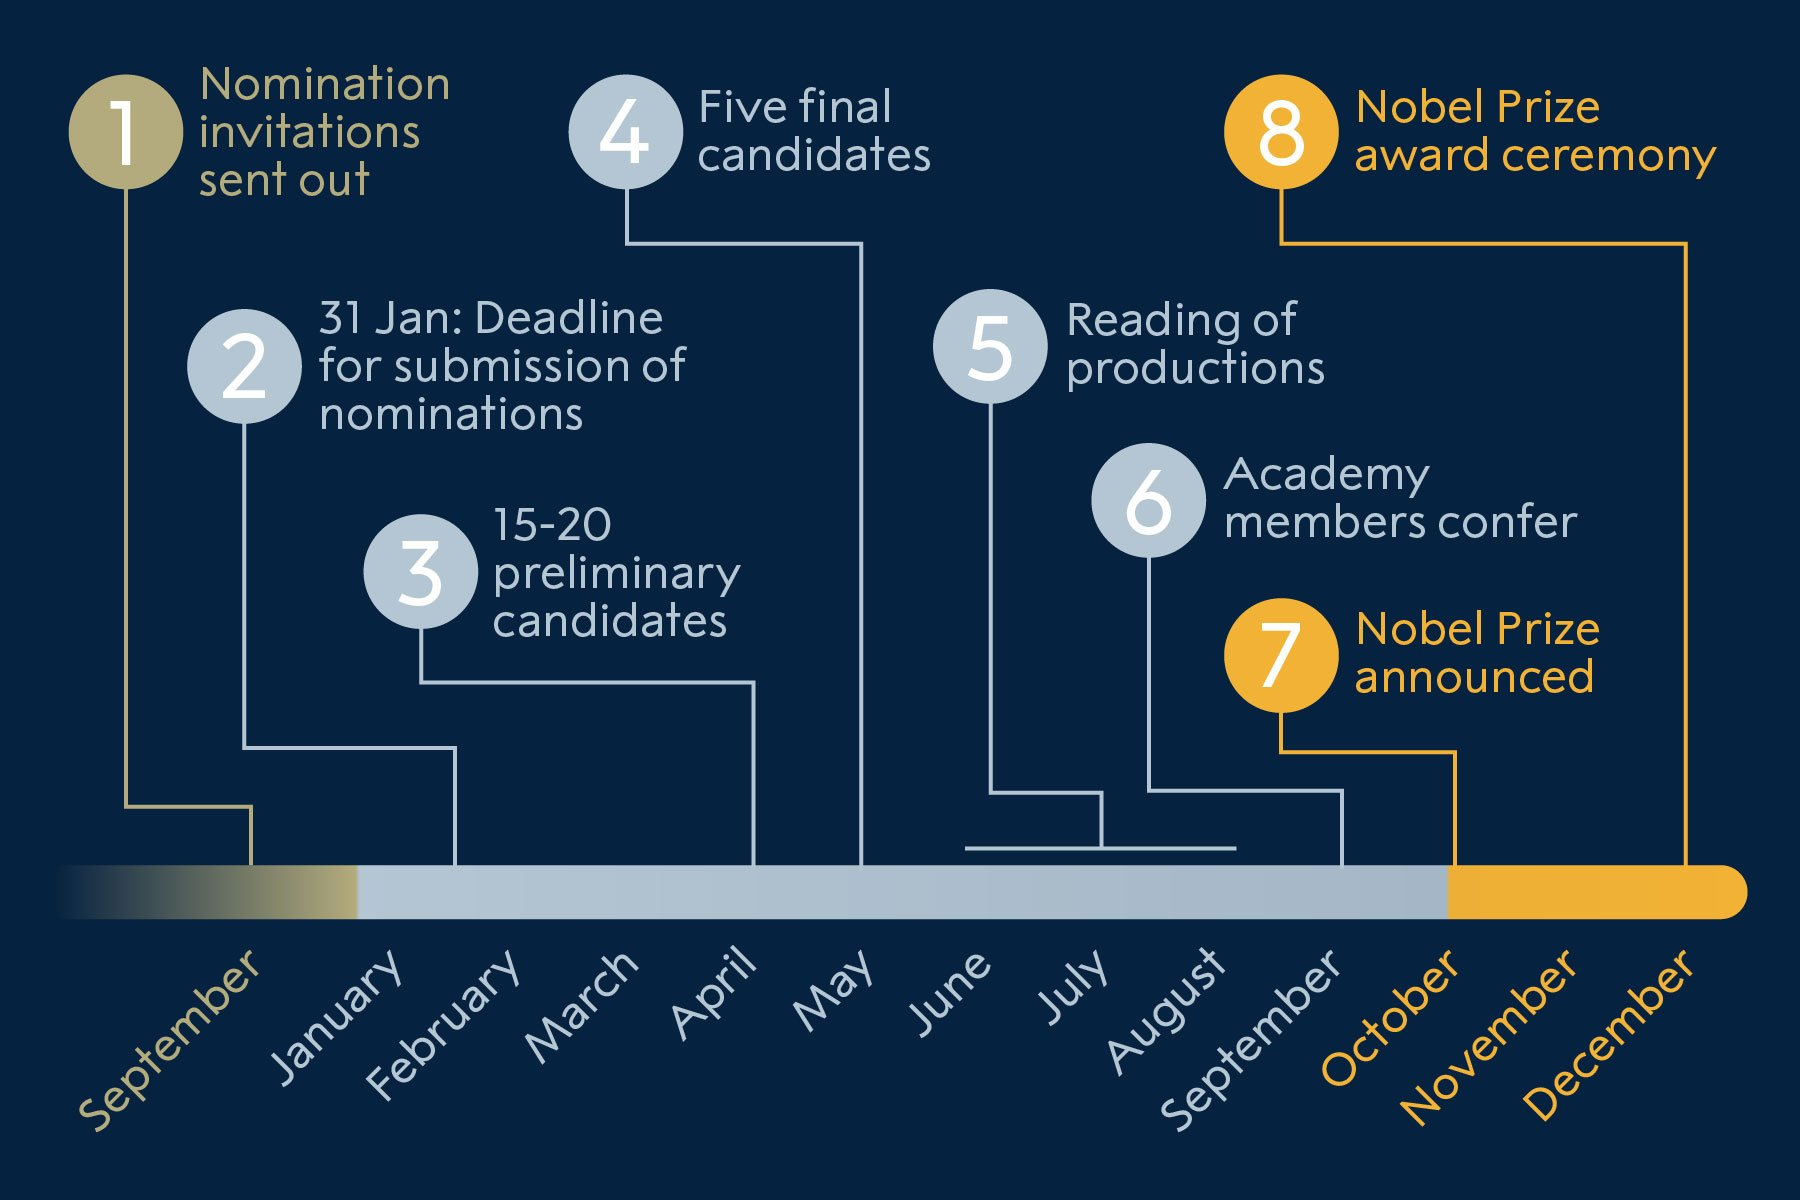 The nomination process for Nobel Laureates in Literature